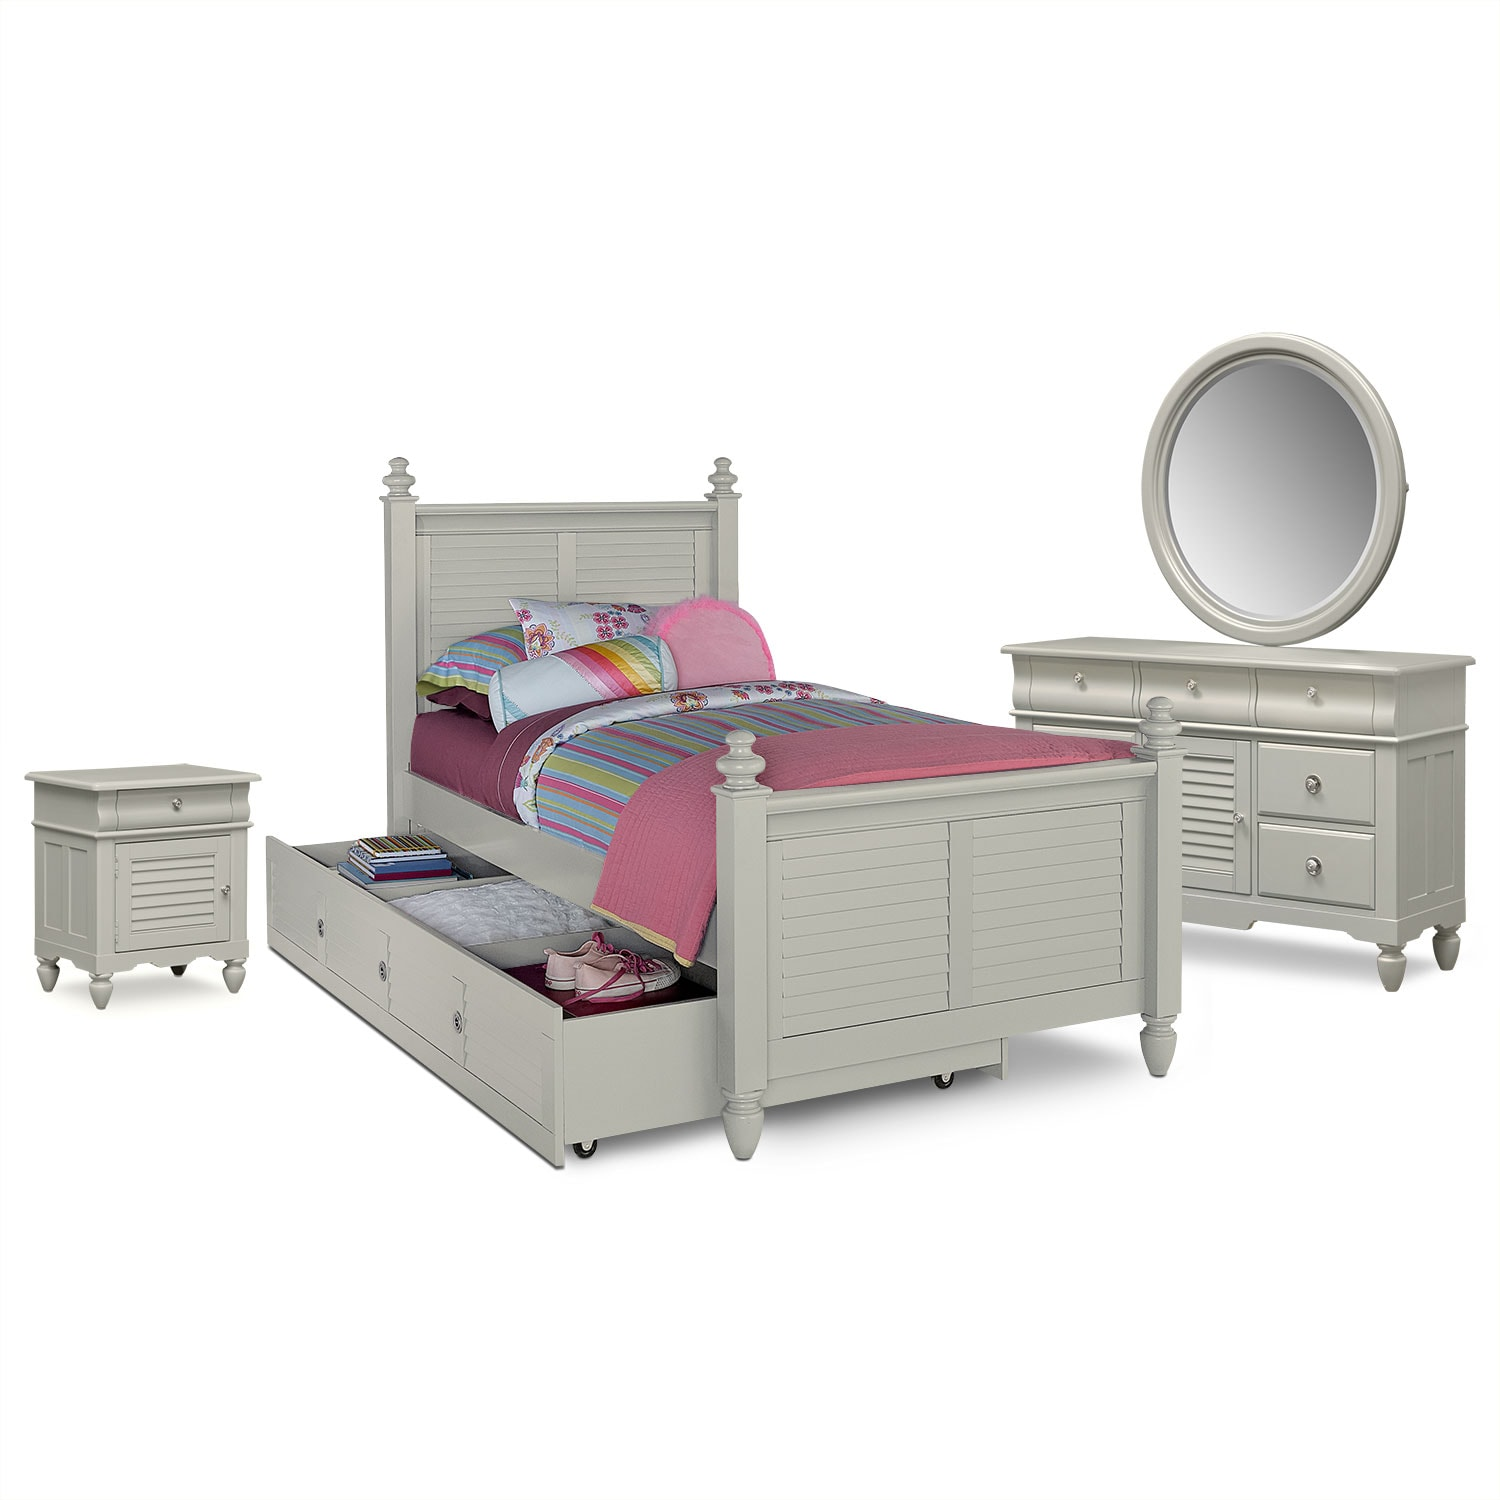 Seaside 6 Piece Full Bedroom Set Gray Value City Furniture: seaside collection furniture